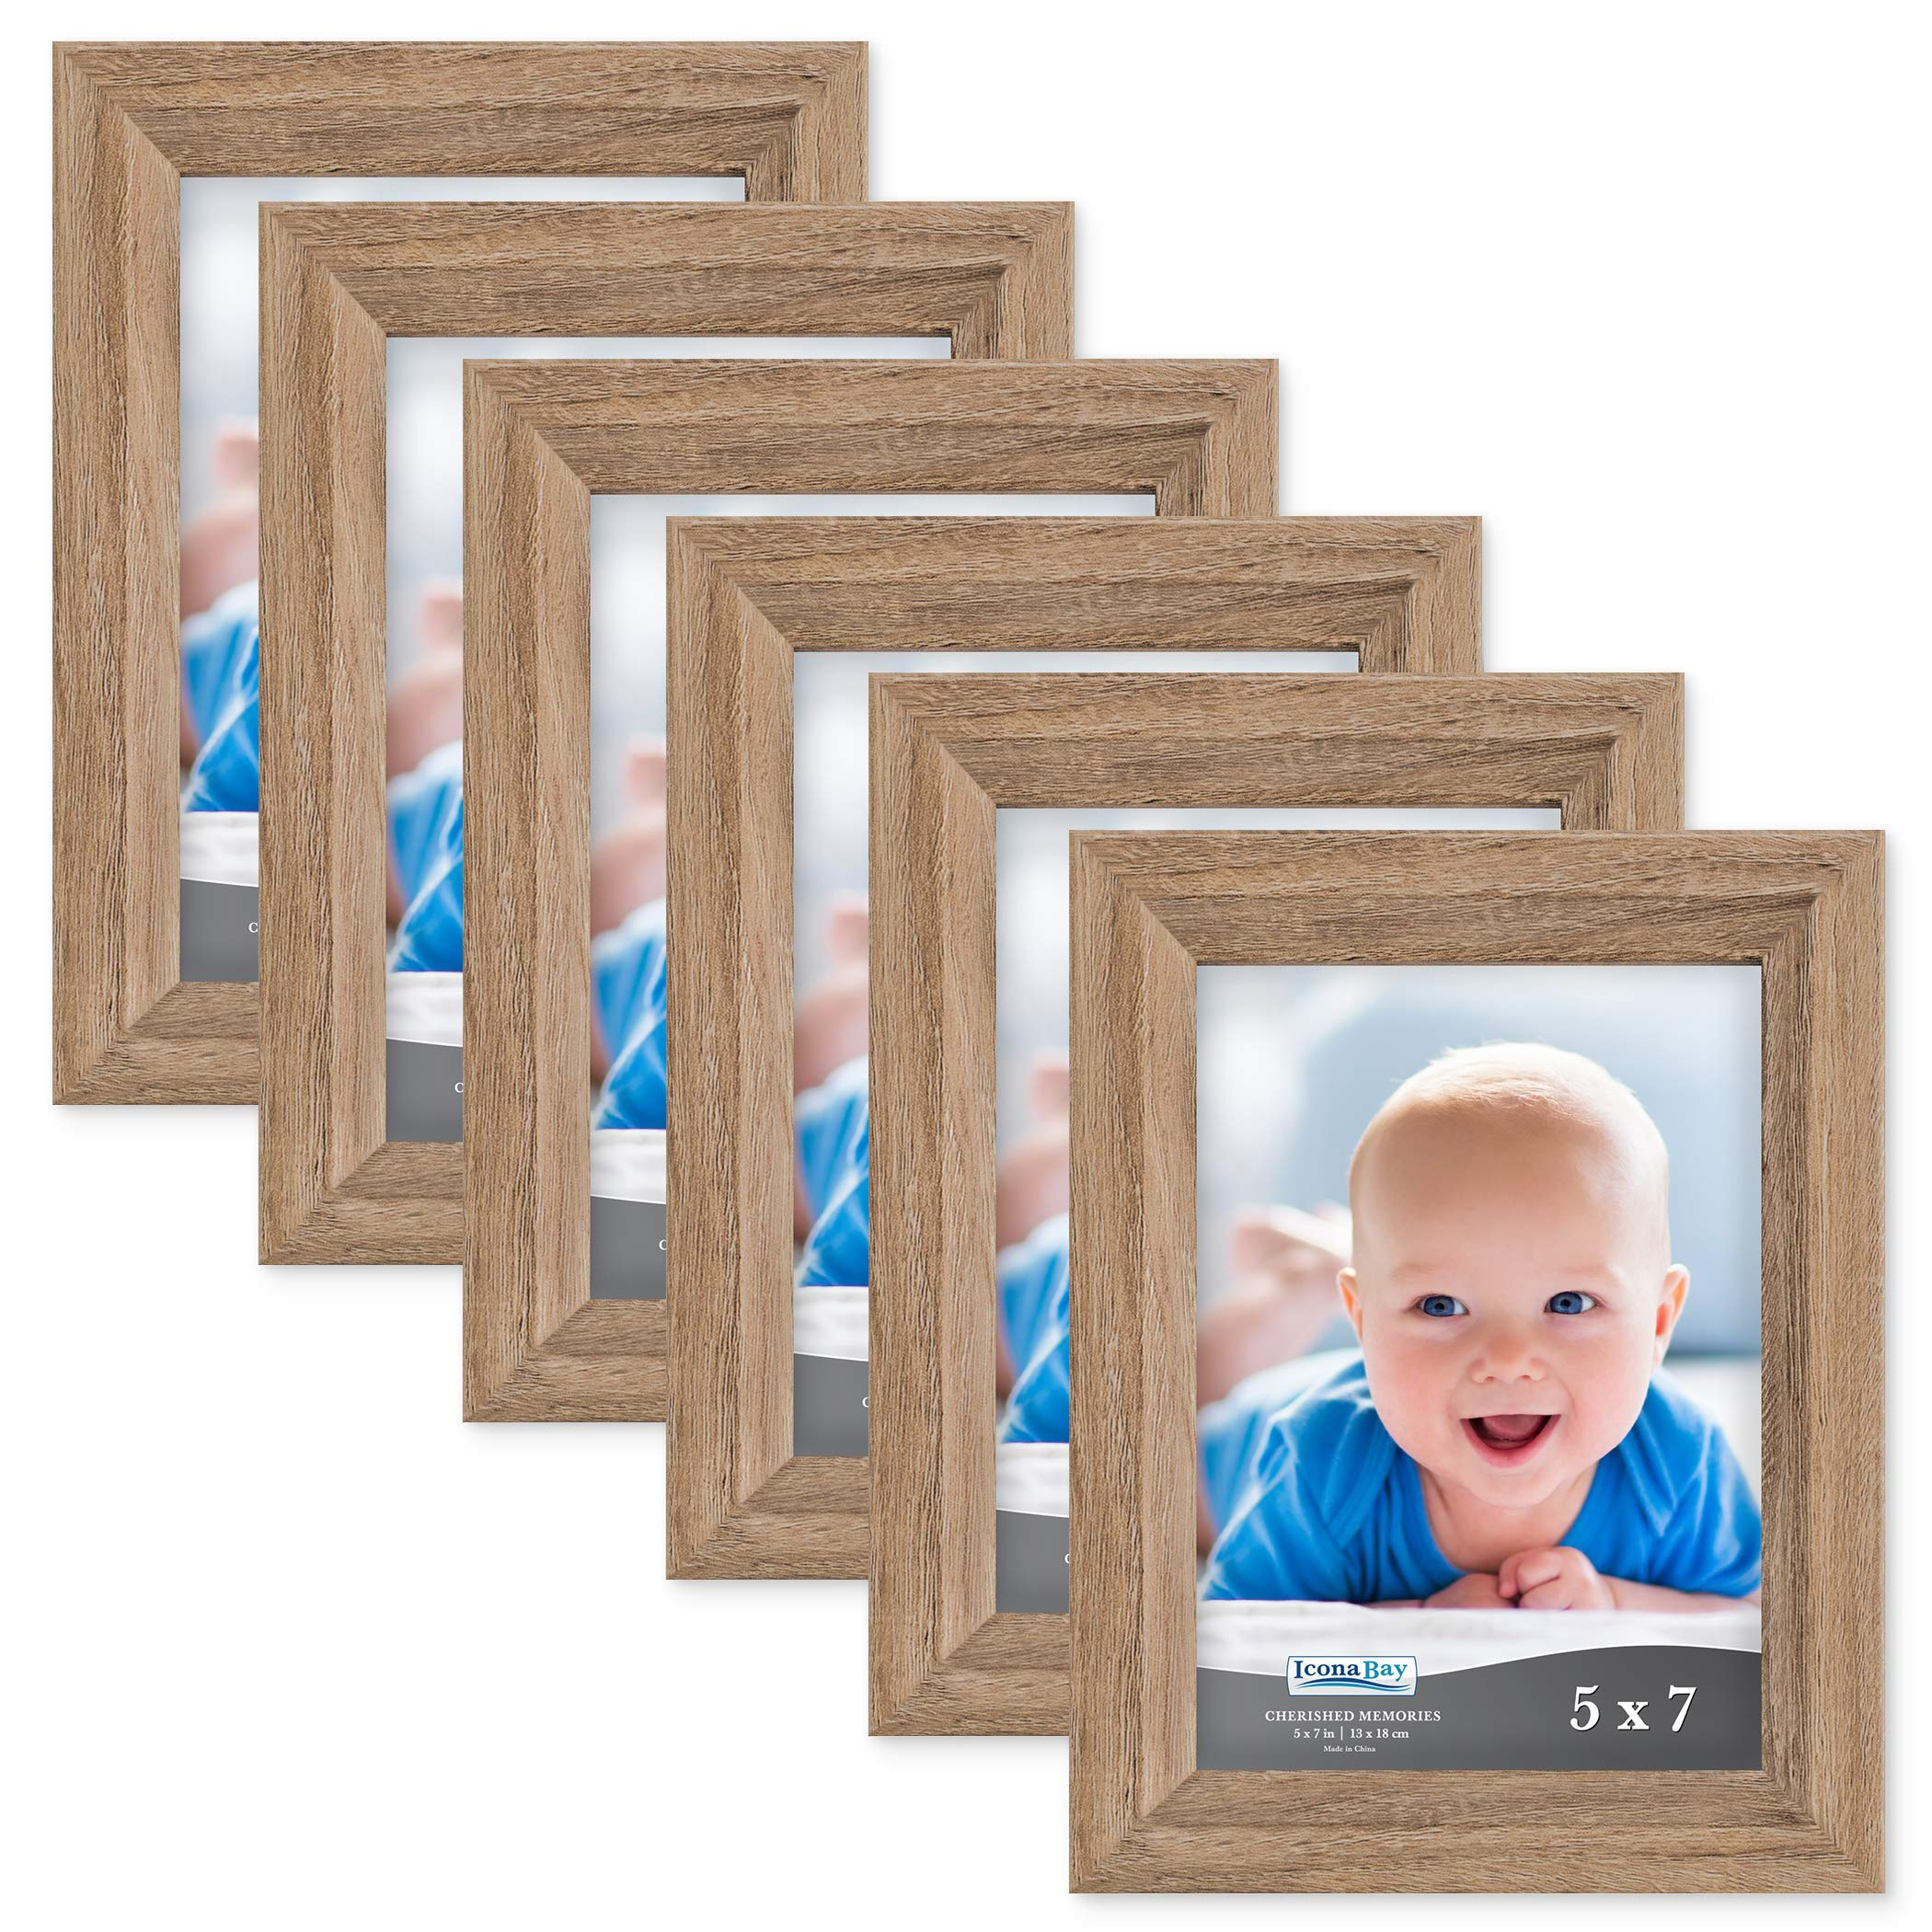 Icona Bay 5x7 Picture Frame (6 Pack, Dark Oak Wood Finish), Photo Frame 5 x 7, Composite Wood Frame for Walls or Tables, Set of 6 Cherished Memories Collection by Icona Bay